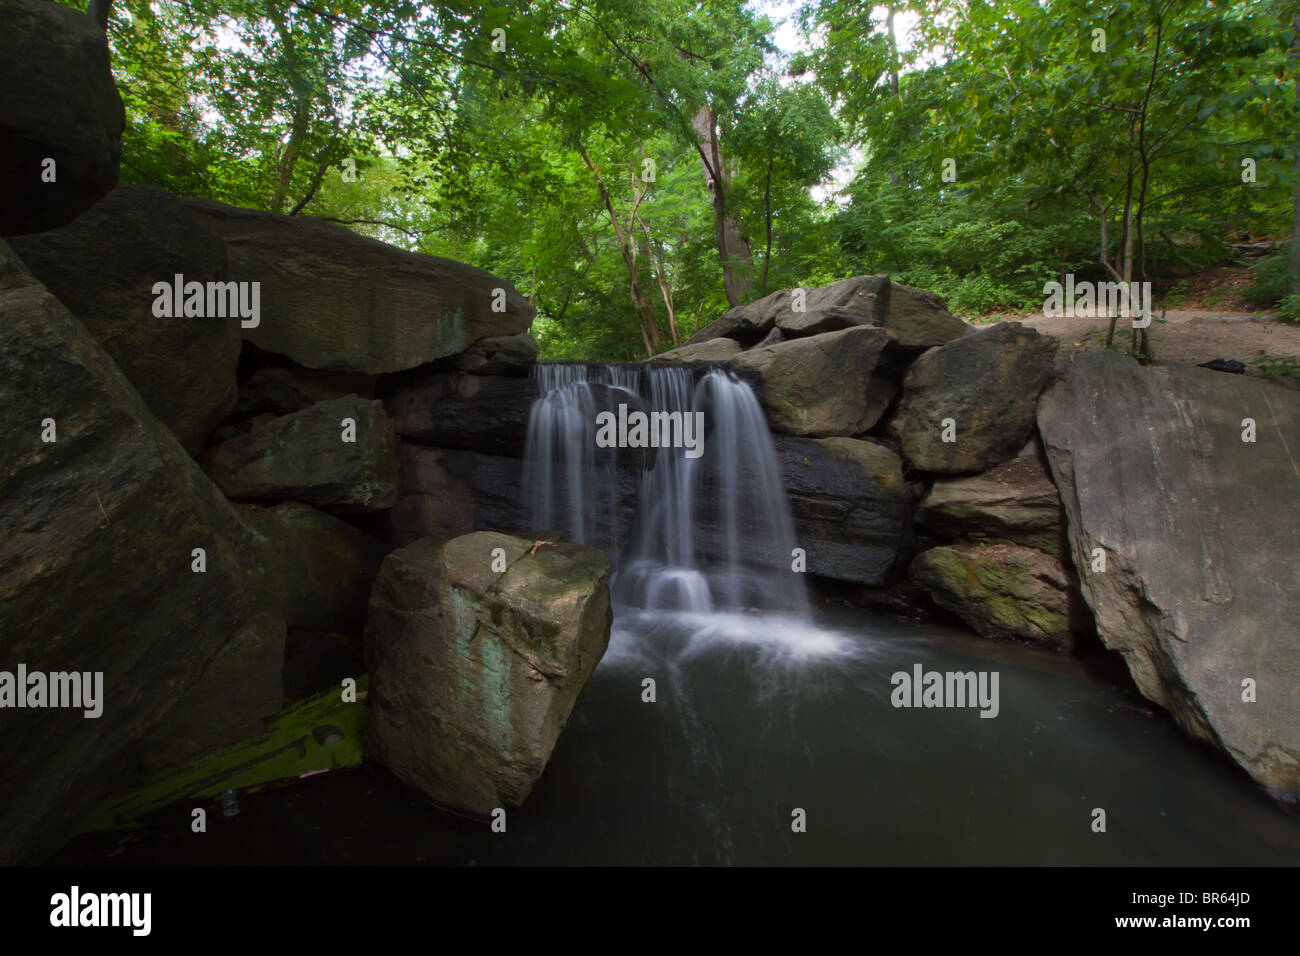 Waterfall in the North End of Central Park - Stock Image